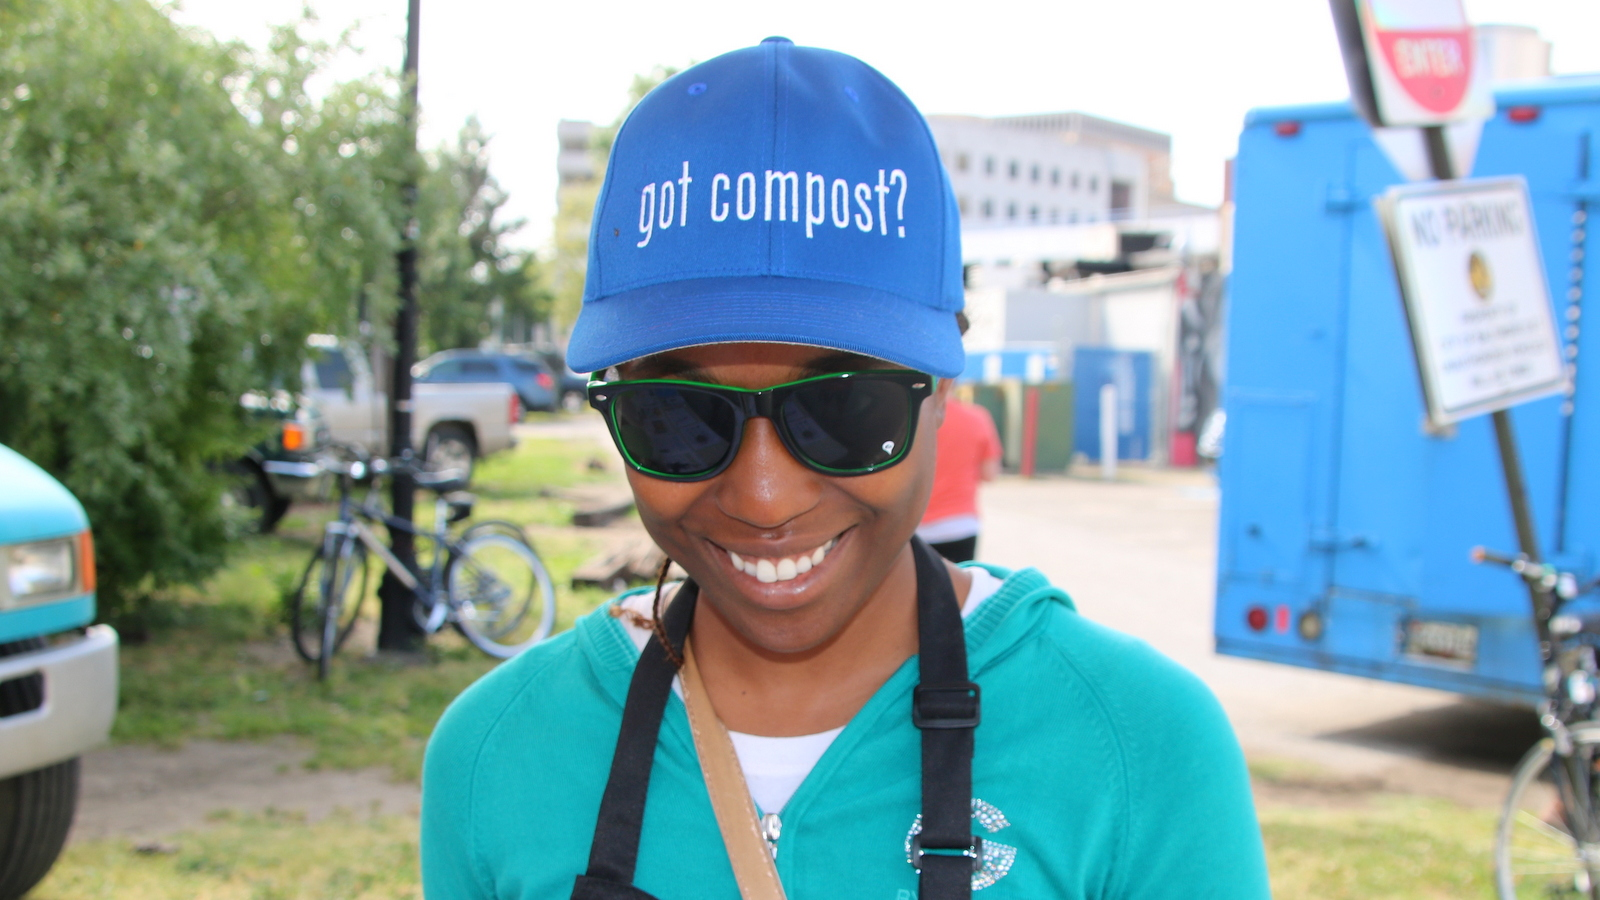 Steering Baltimore's compost collection program, Ava Richardson sends her message with style. (Fern Shen)